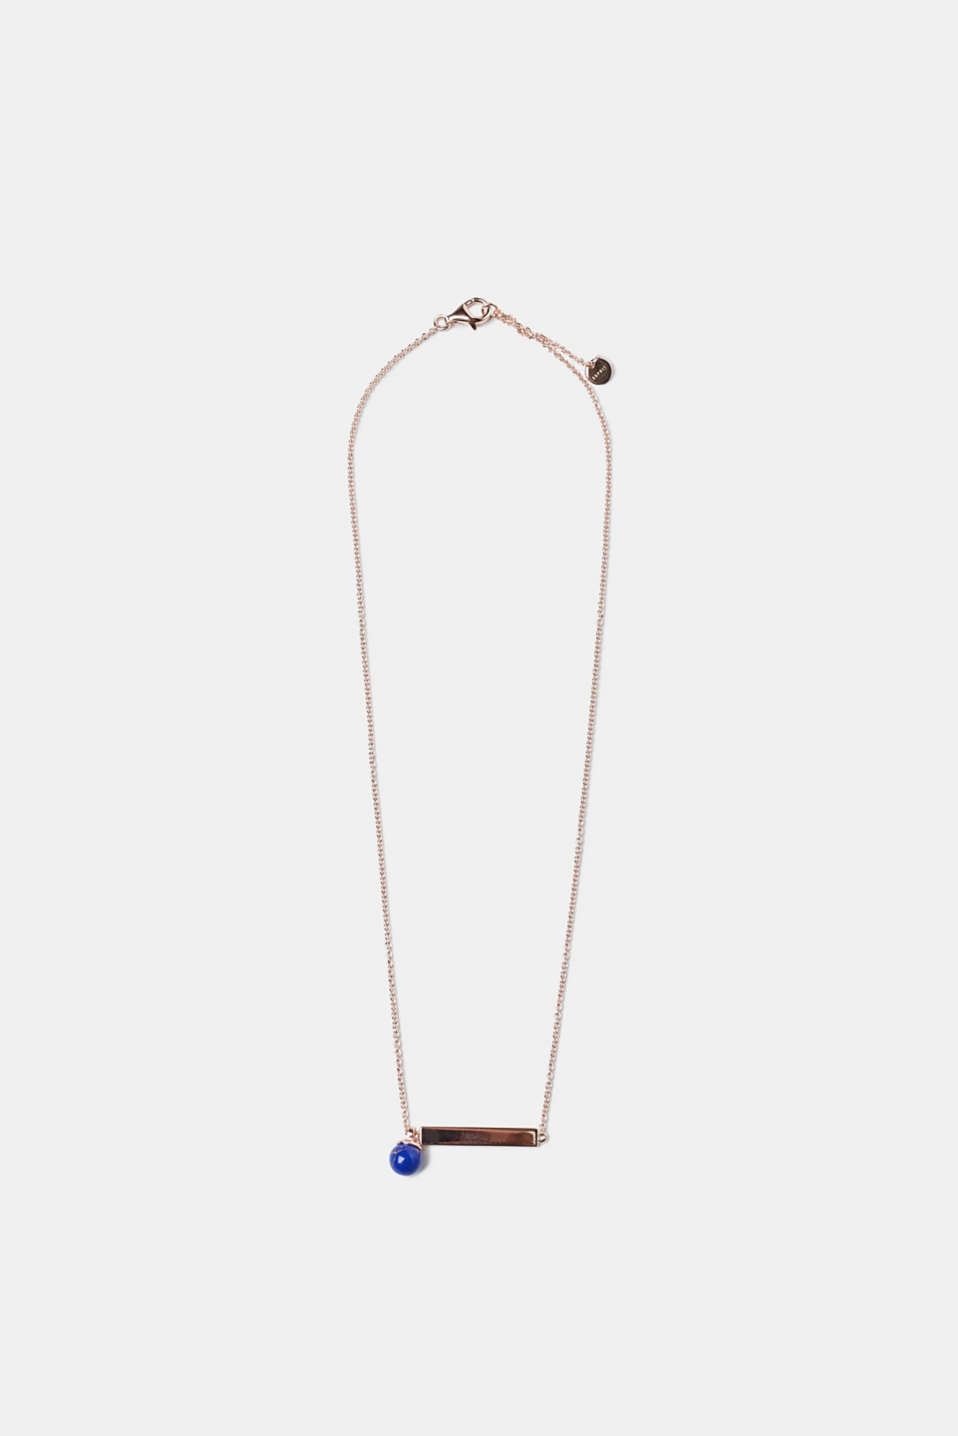 Esprit - Sterling silver necklace with a blue bead